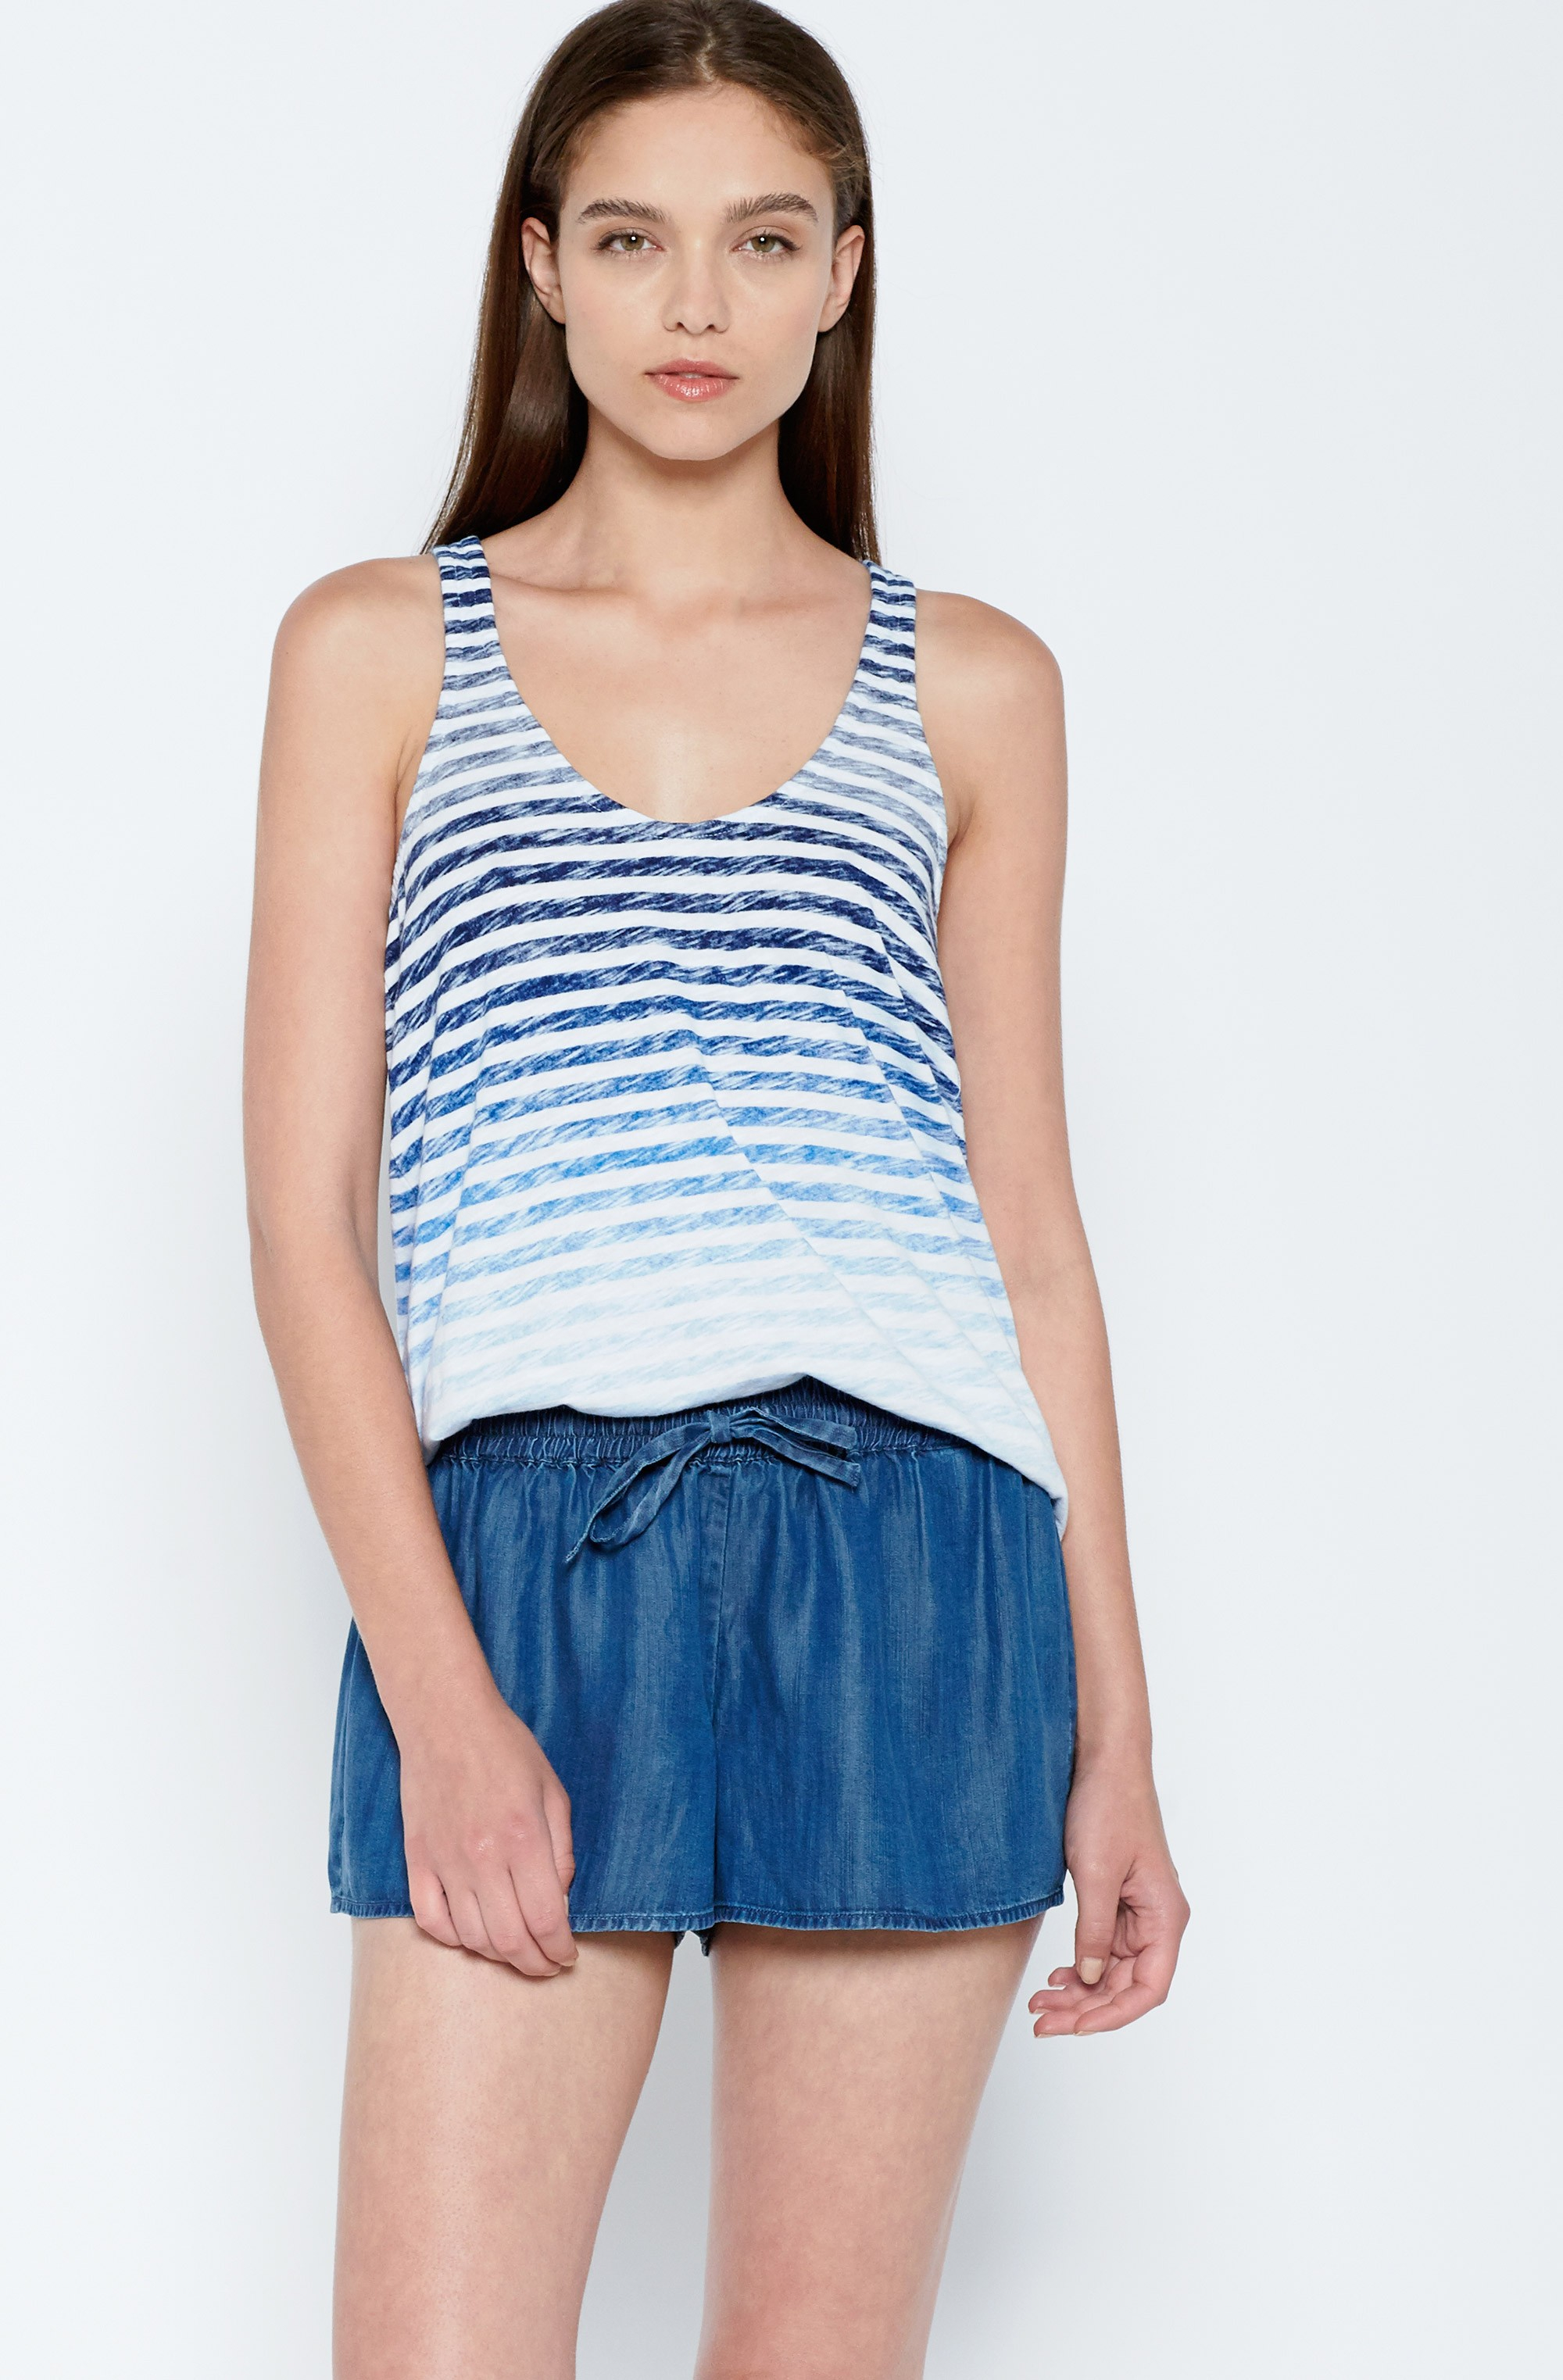 5530304b3657a Lyst - Joie Everett B Top in Blue